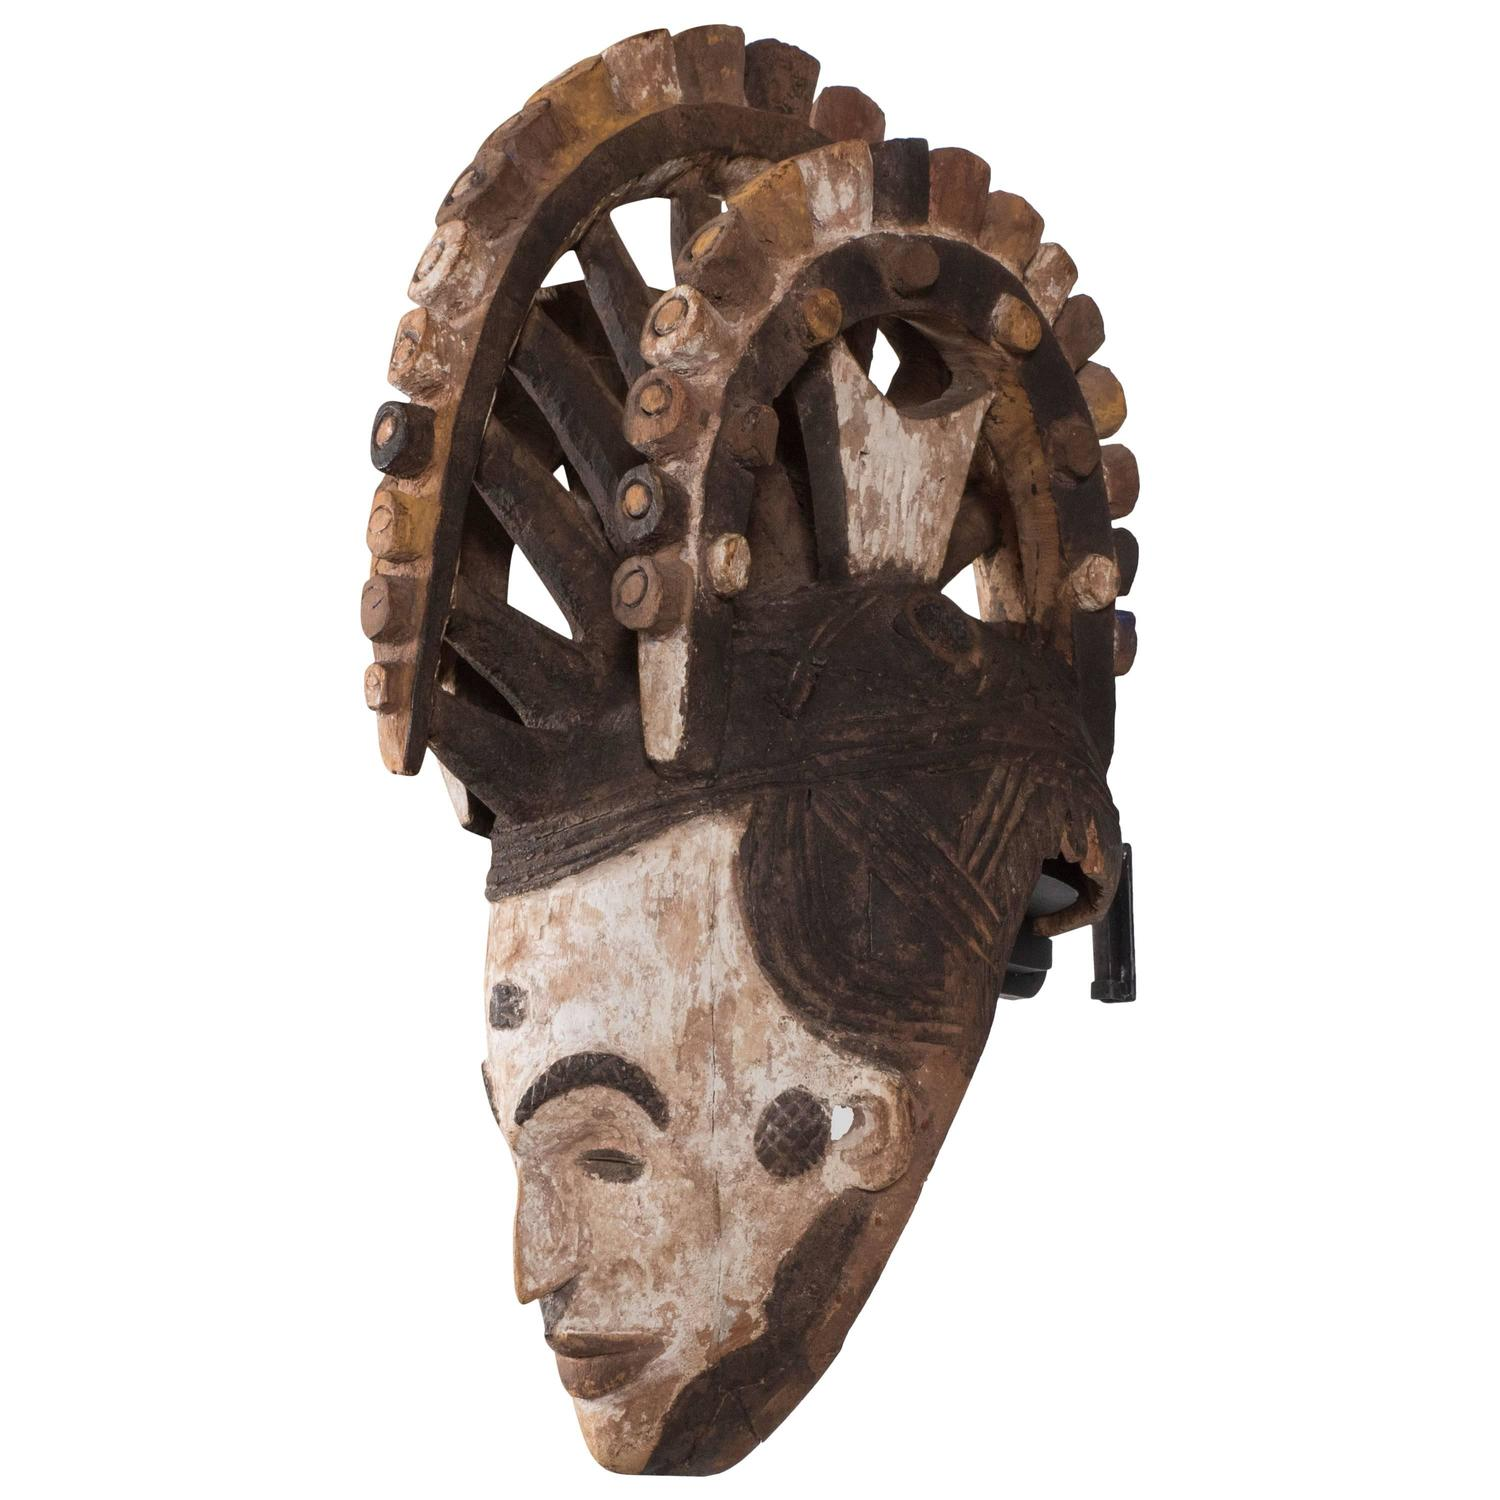 Wall mounted carved wood sculpture of igbo mask nigeria late 19th century for sale at 1stdibs